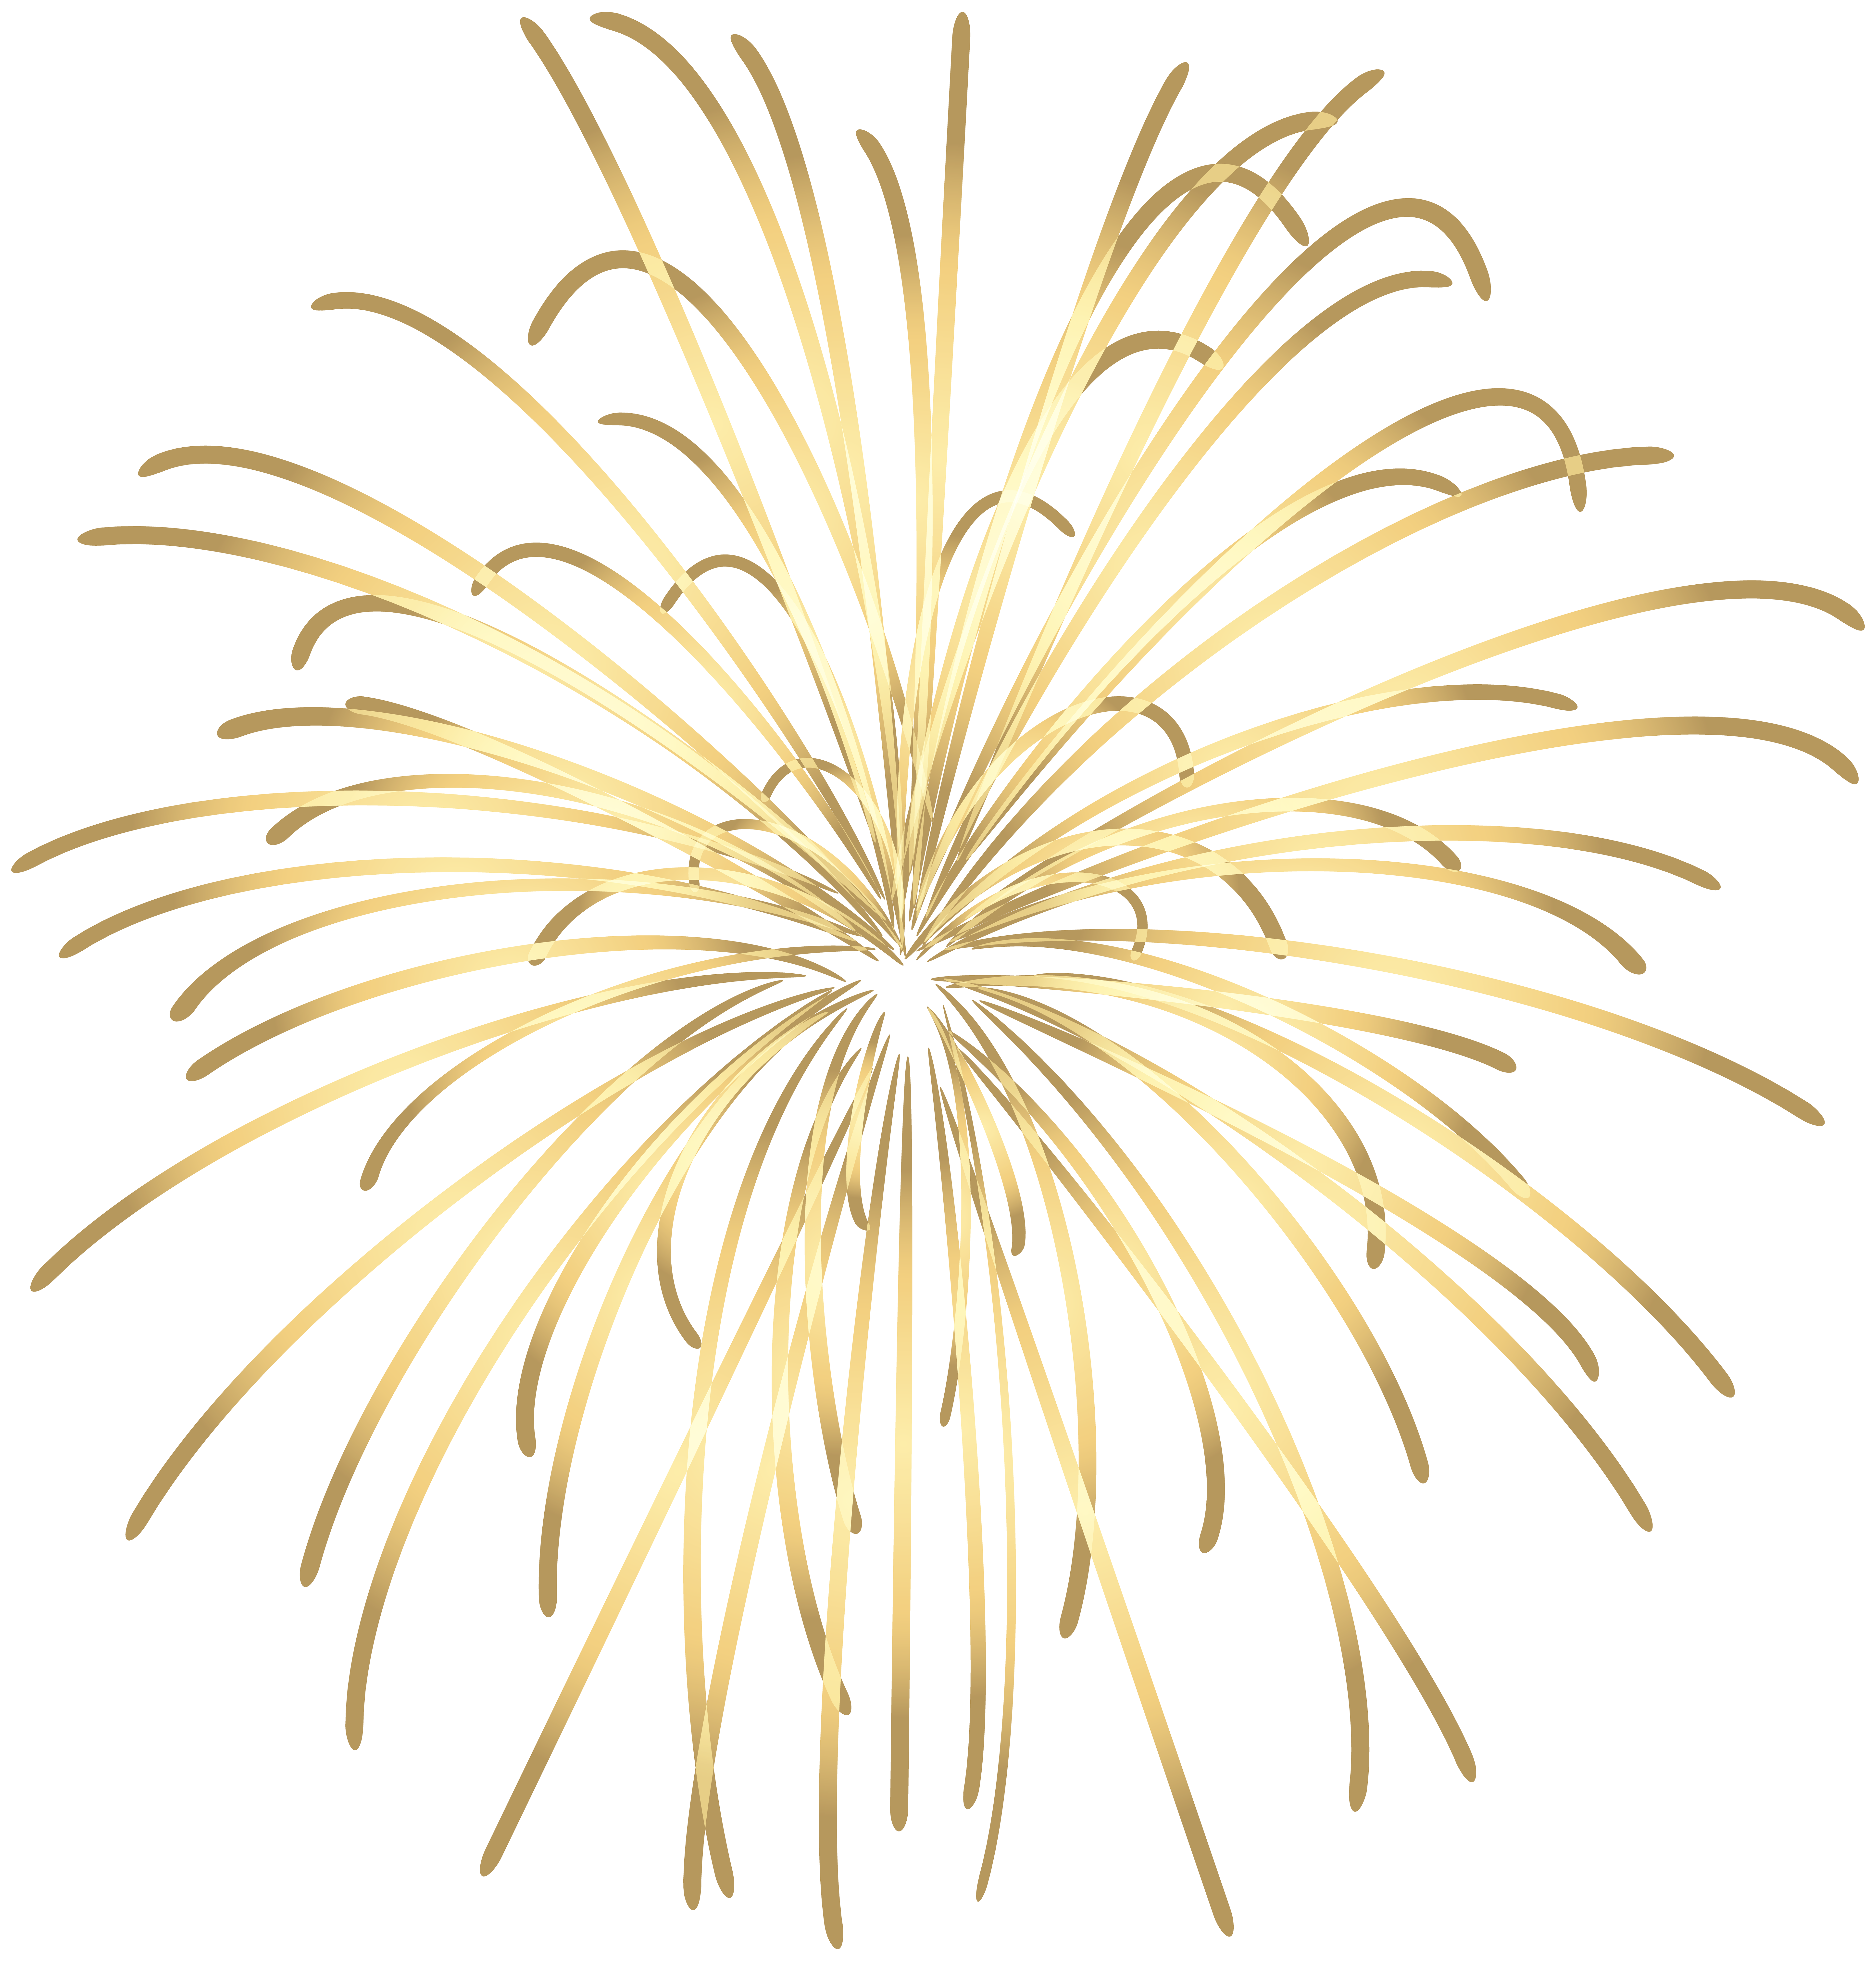 Clipart fireworks simple.  collection of gold